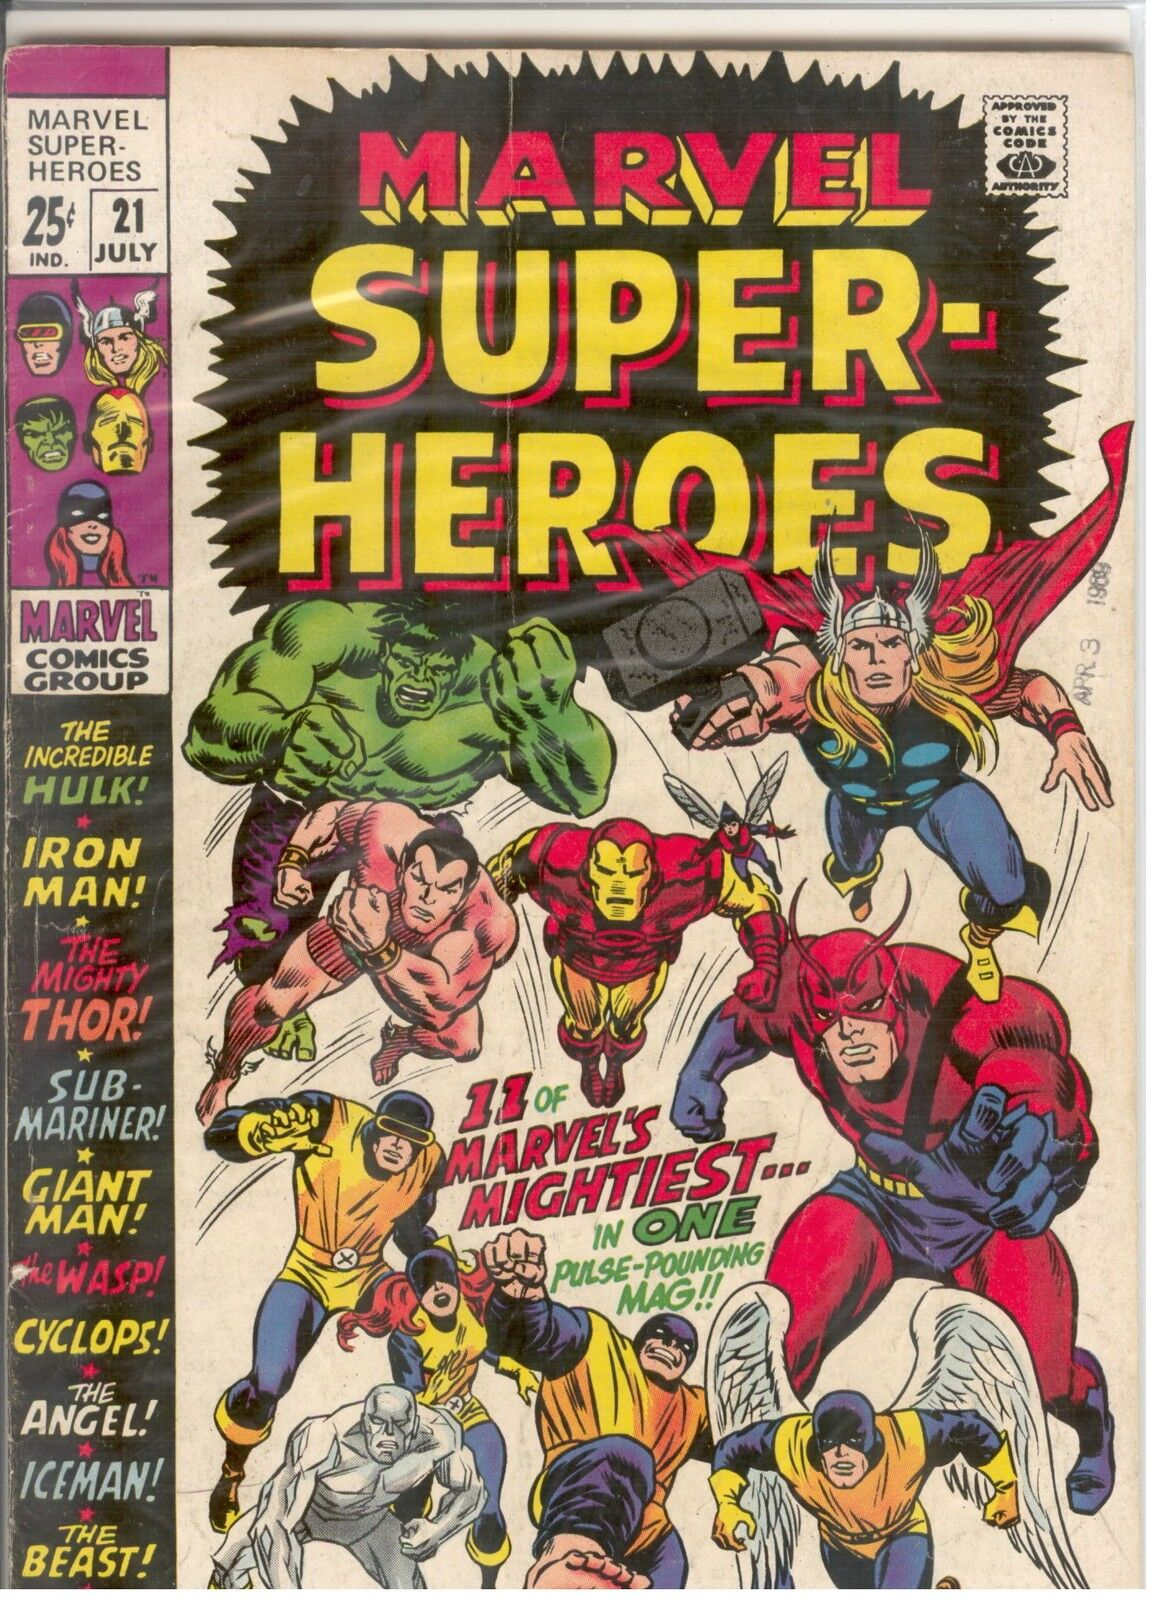 SoBe Comics and Collectibles